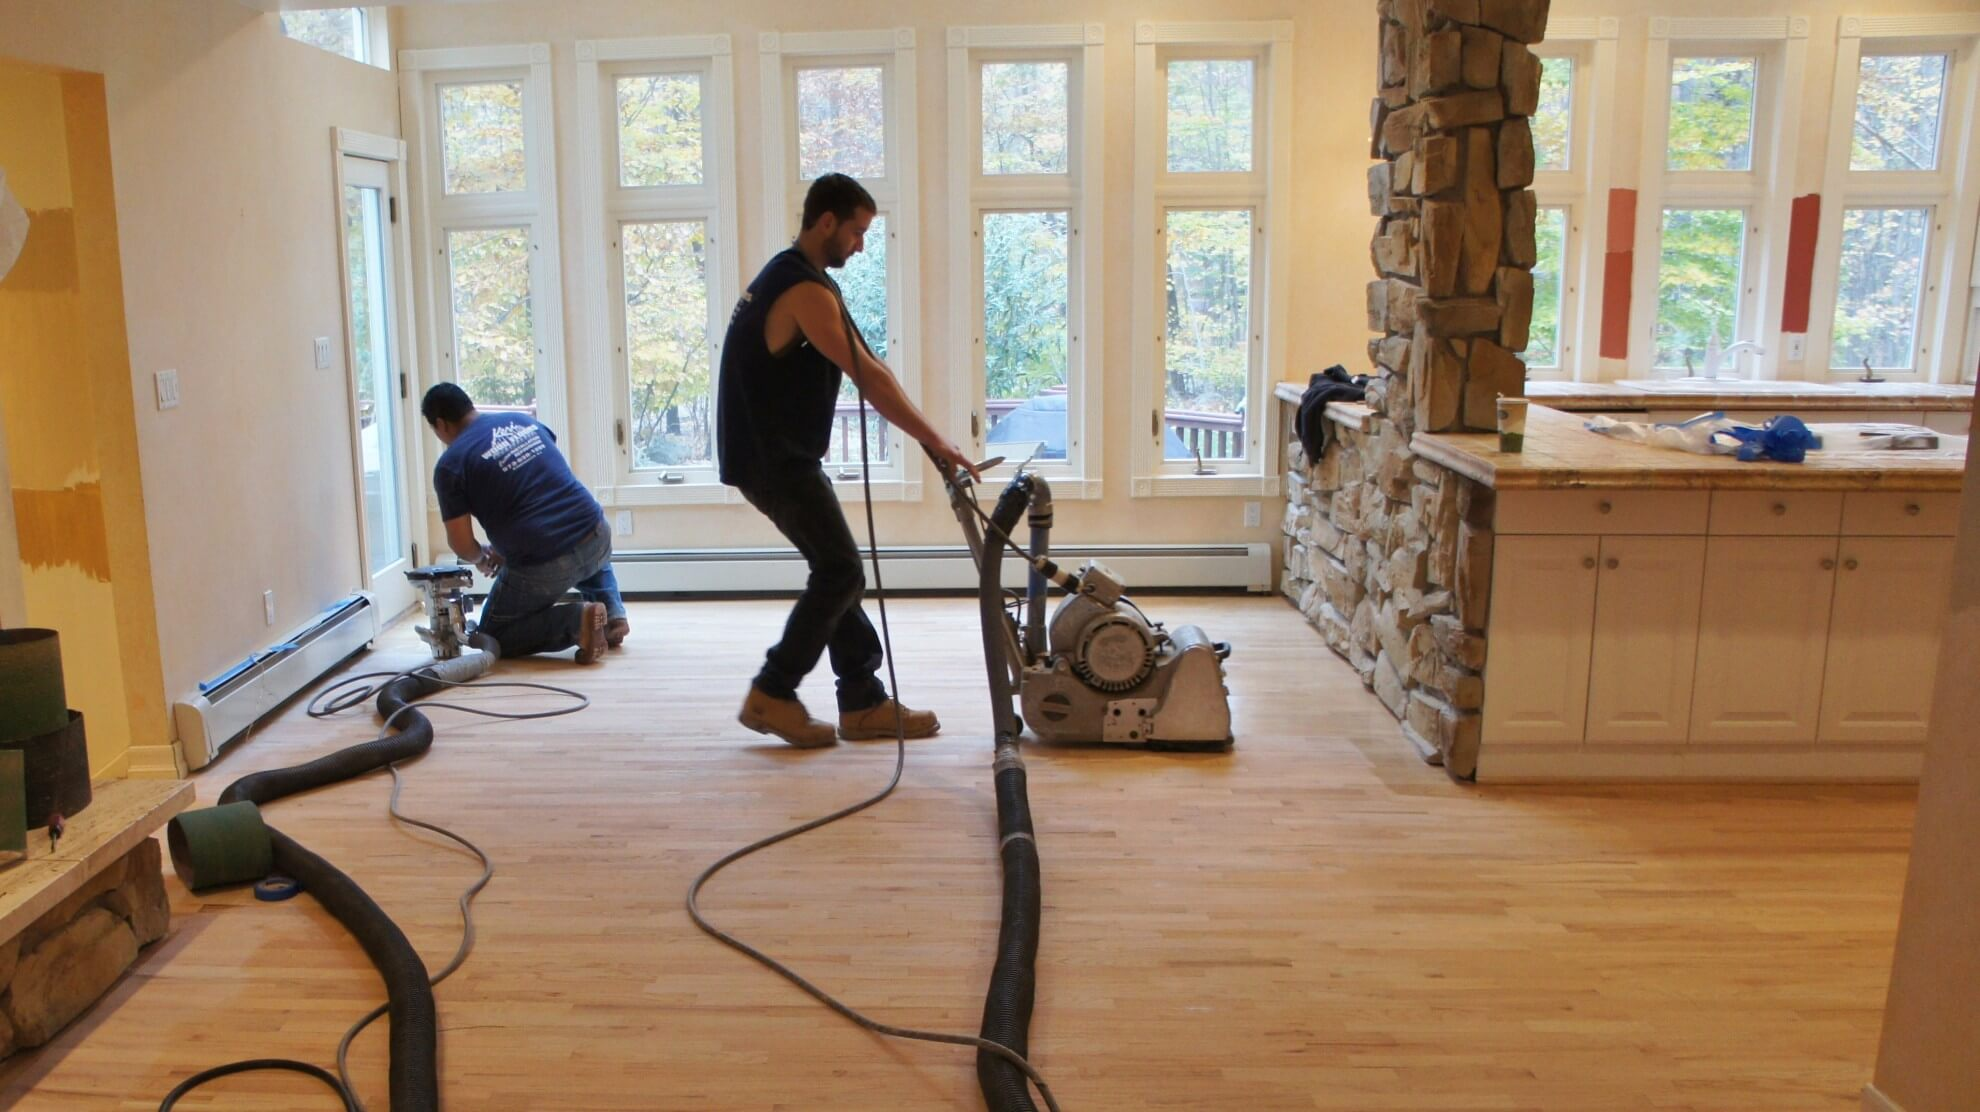 Dustless Hardwood Floor Solution in Wayne, NJ 07470